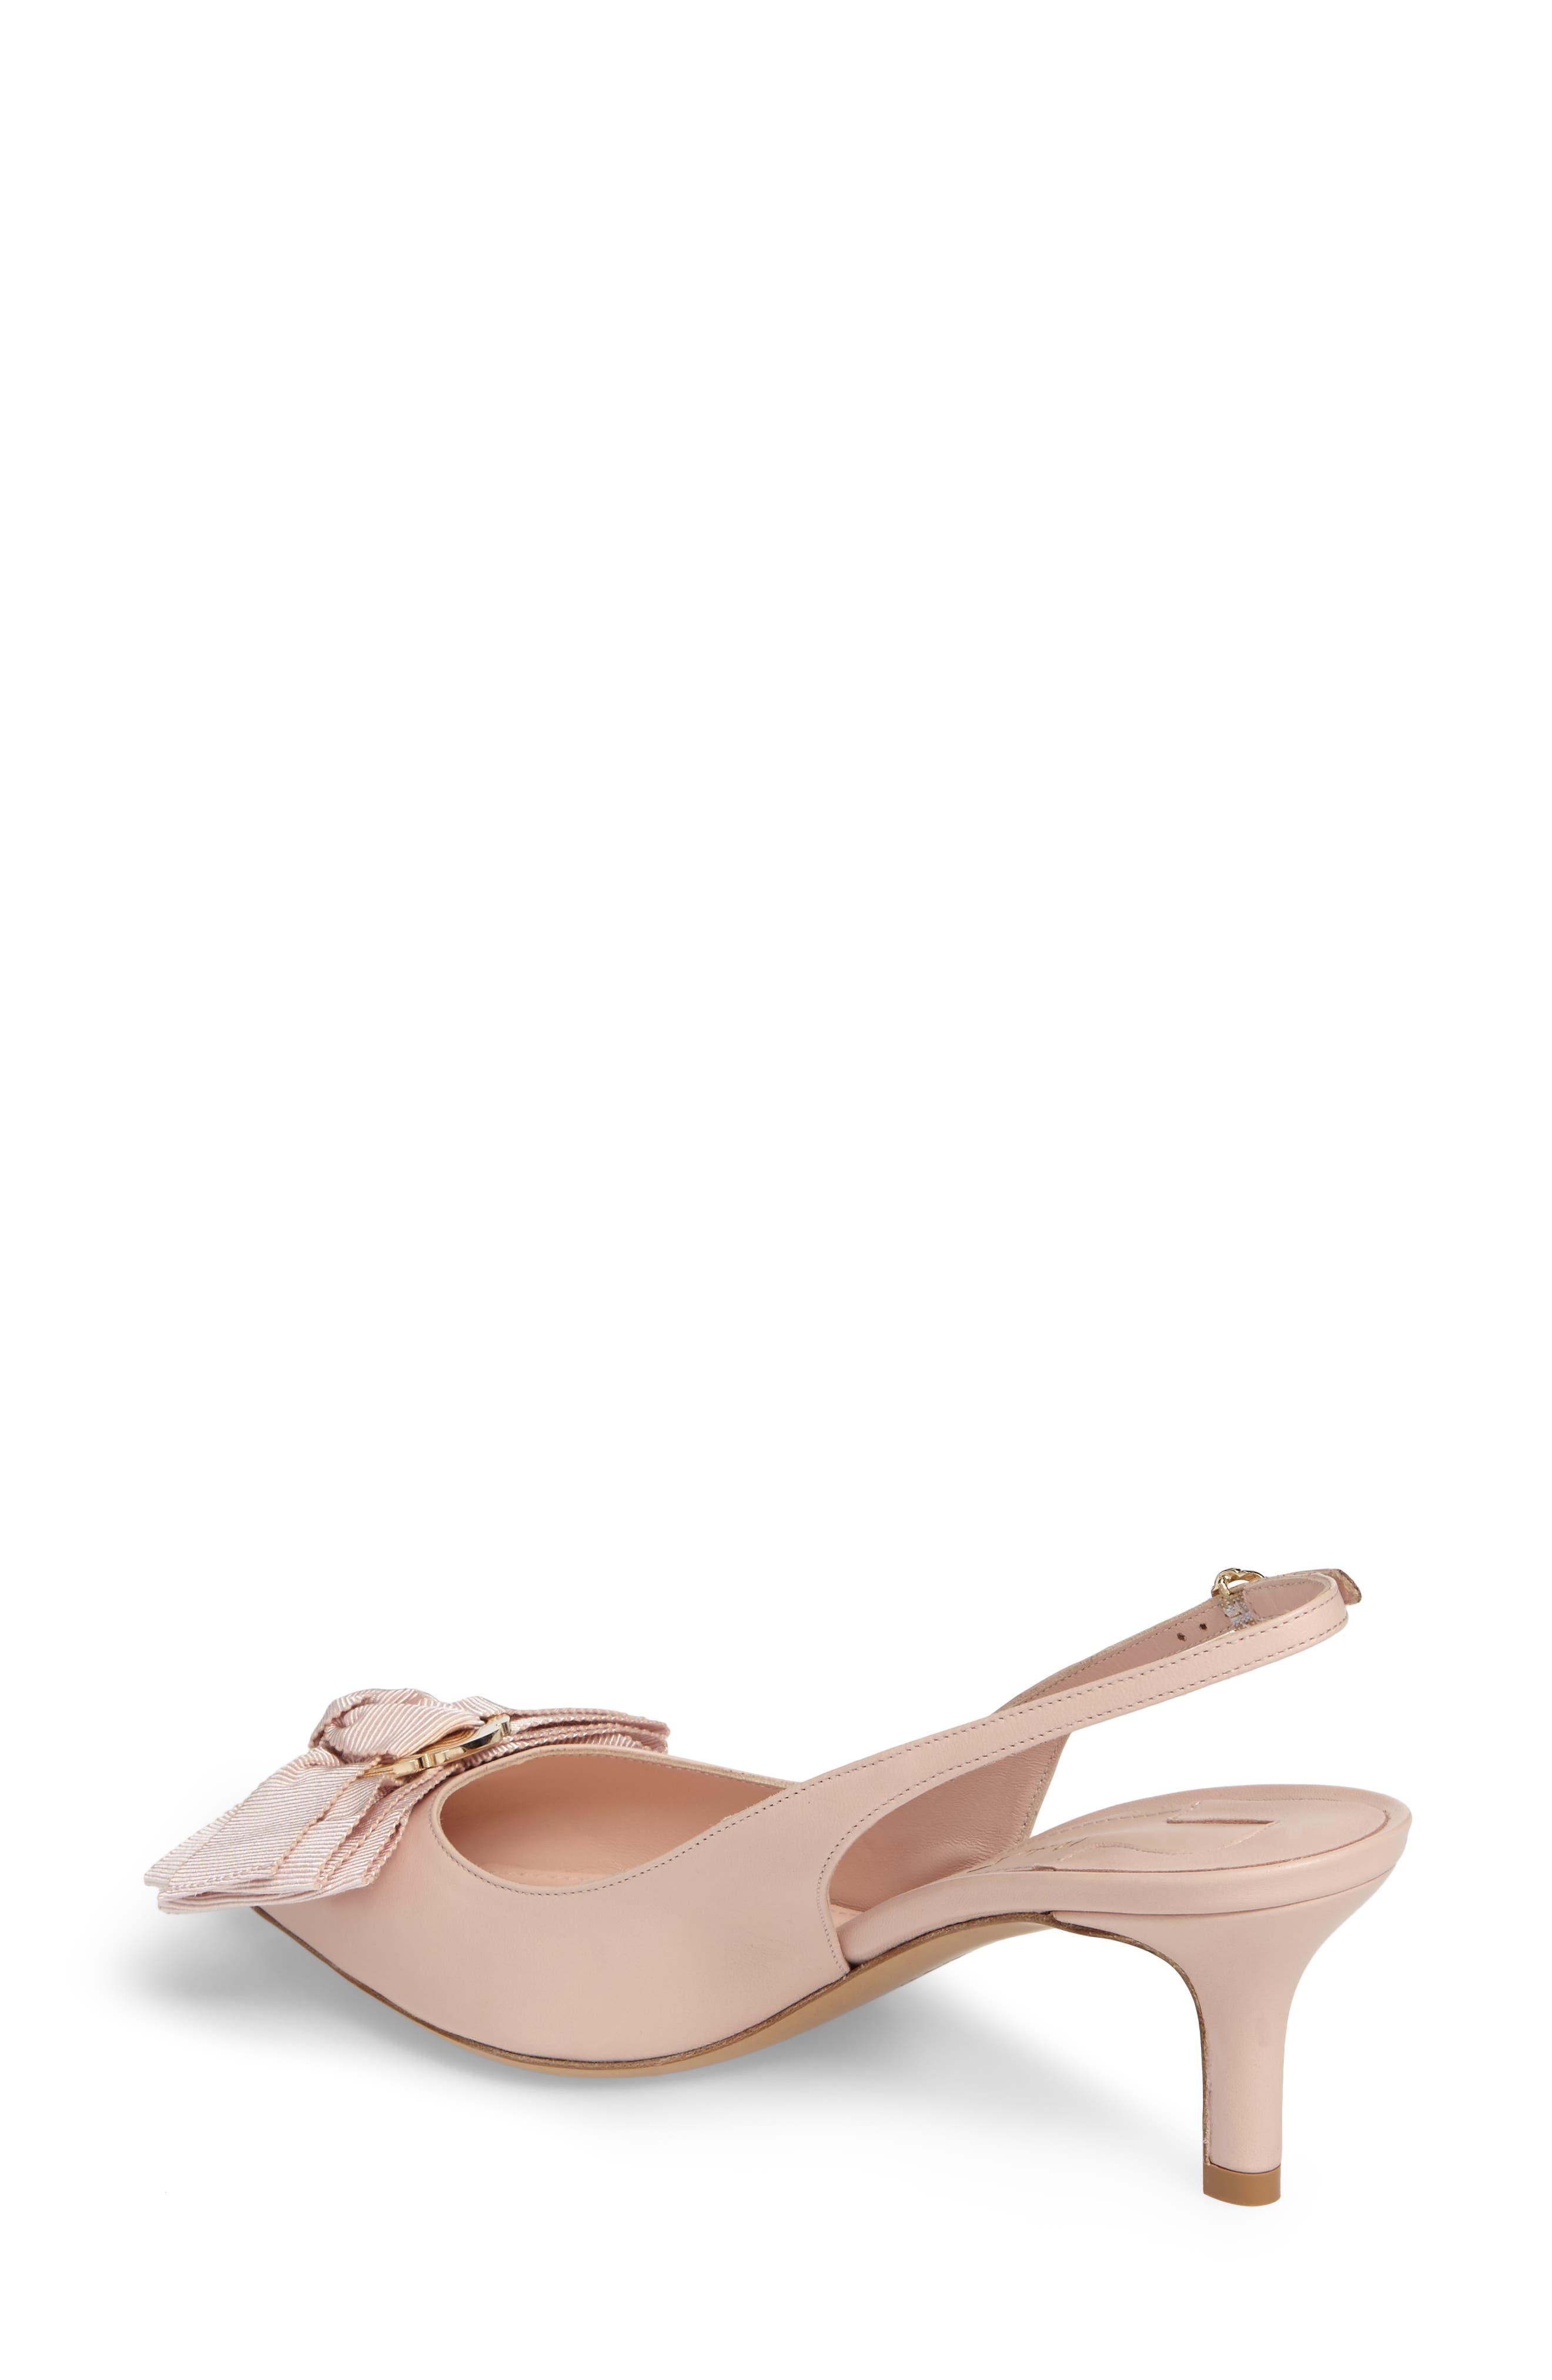 Laterina Slingback Pump,                             Alternate thumbnail 2, color,